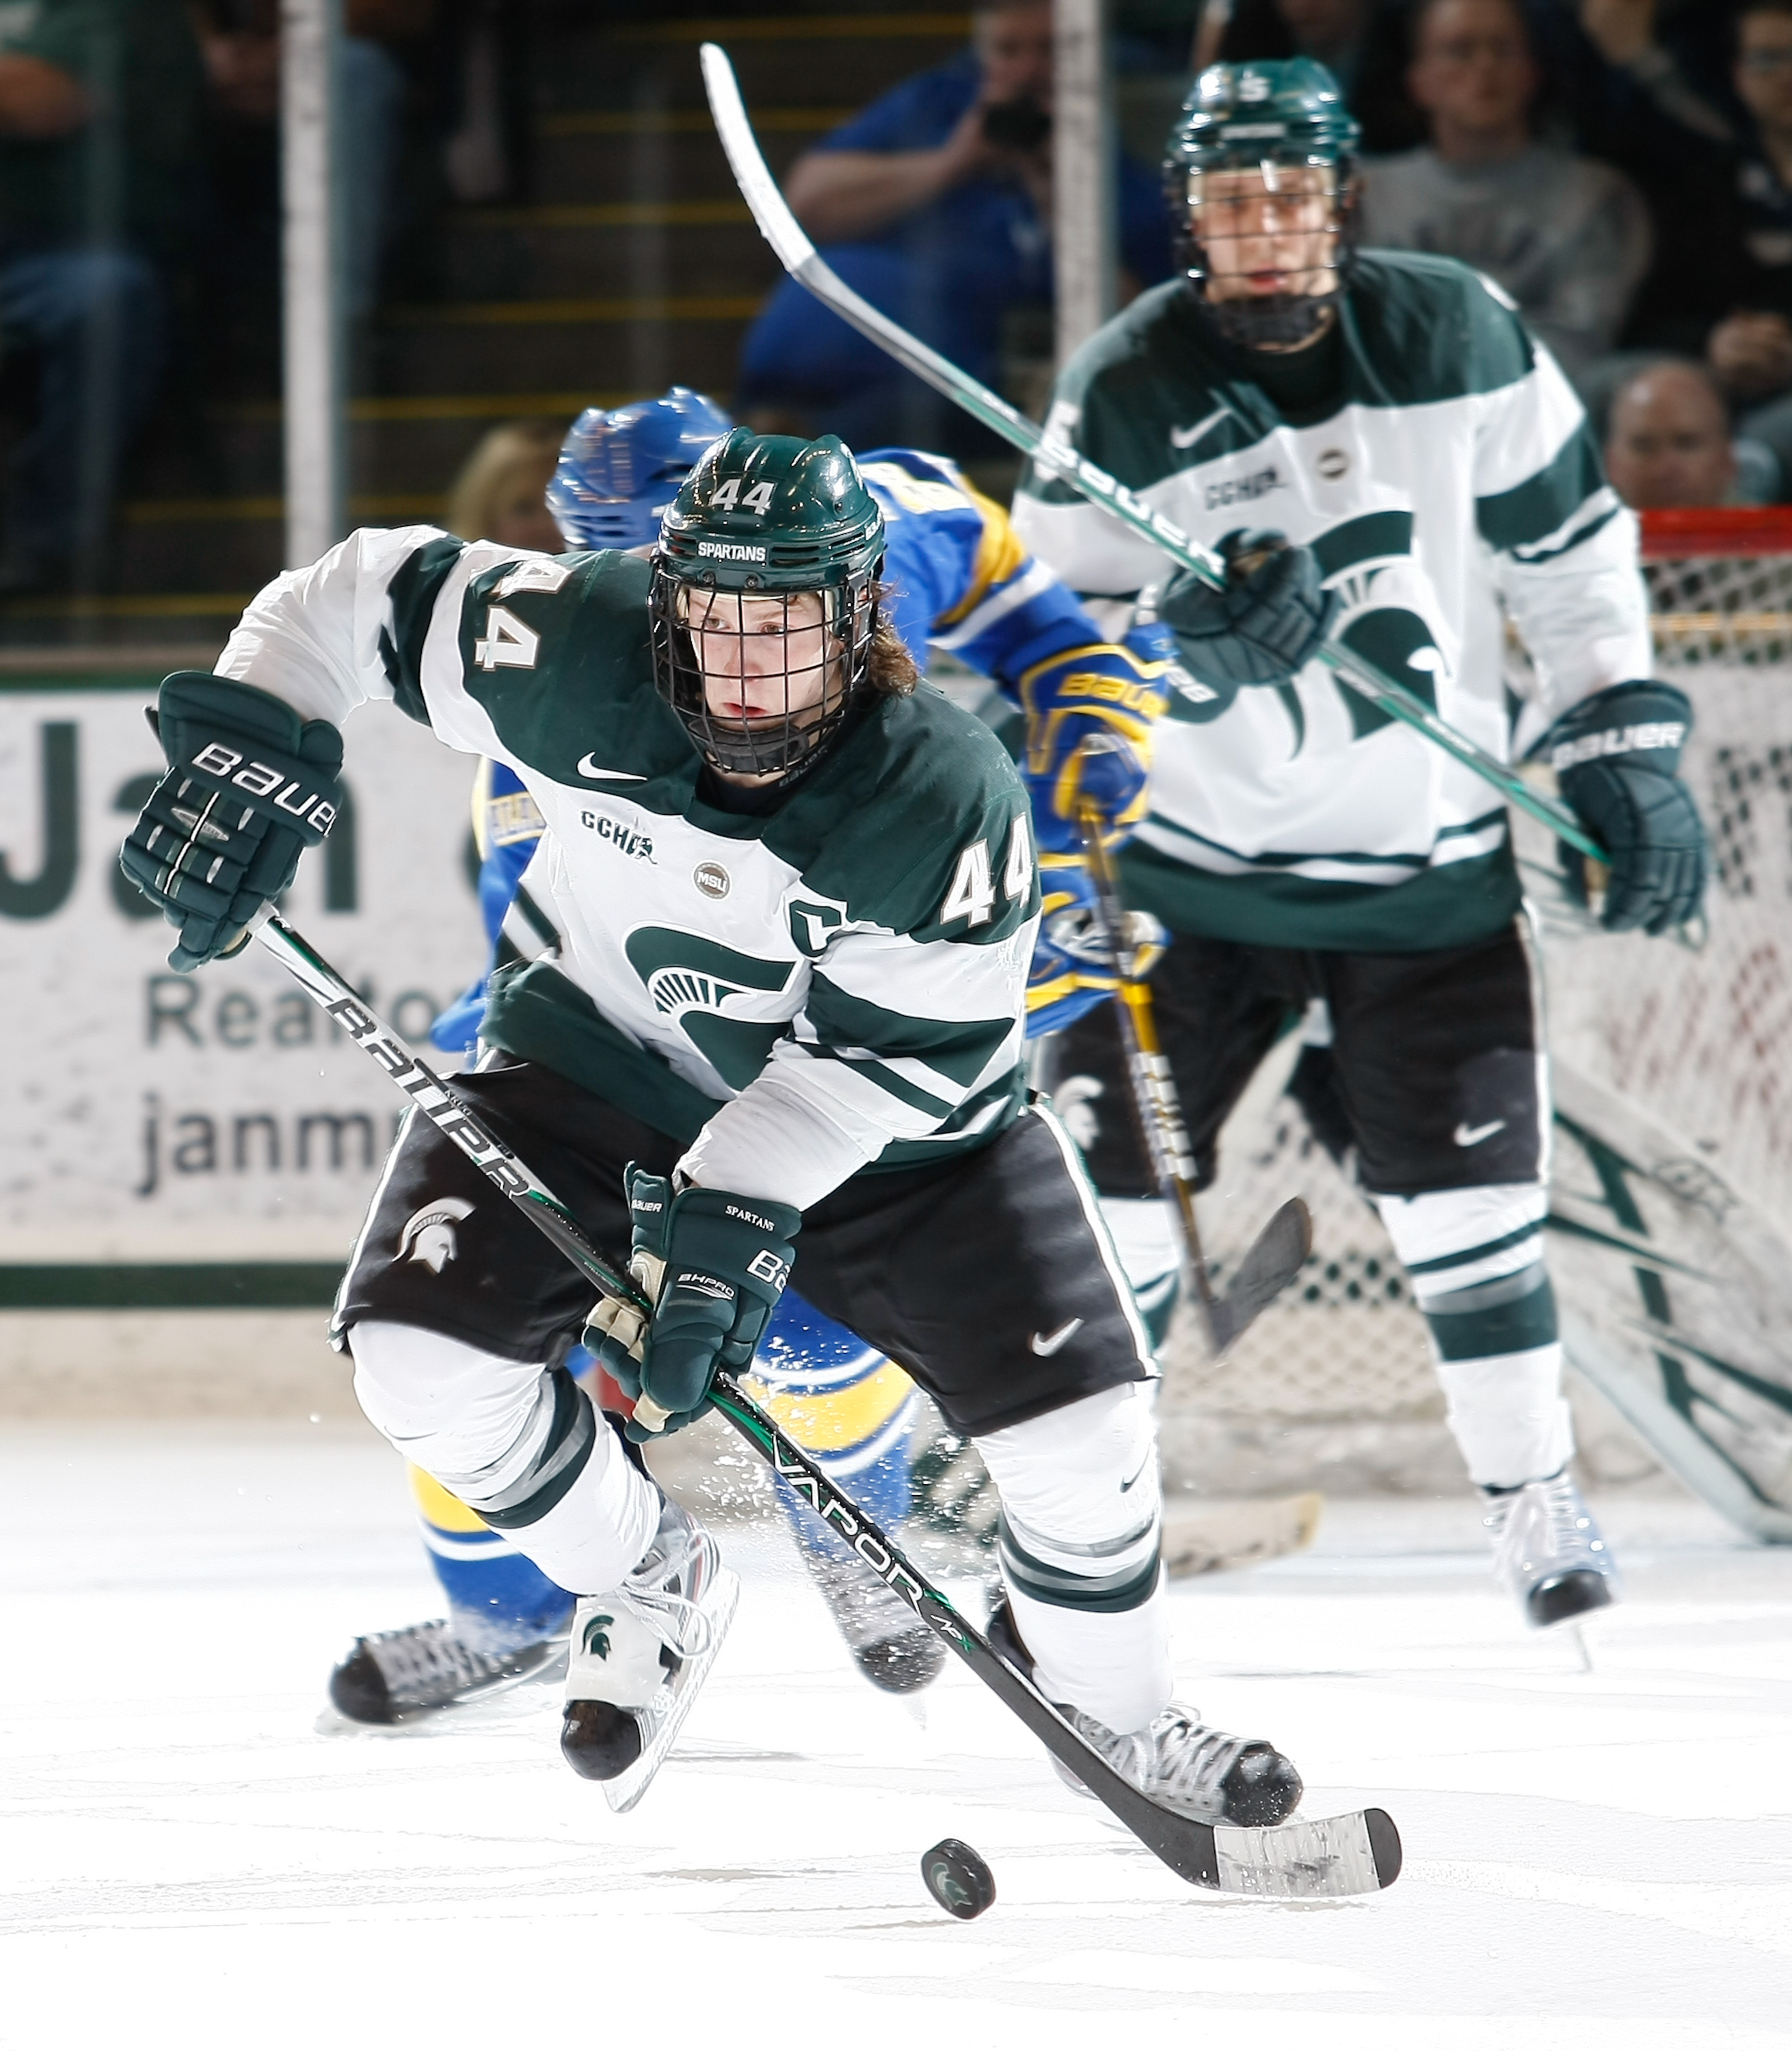 fa865eecb Torey Krug is challenging for the league scoring title. Men's Ice Hockey ...